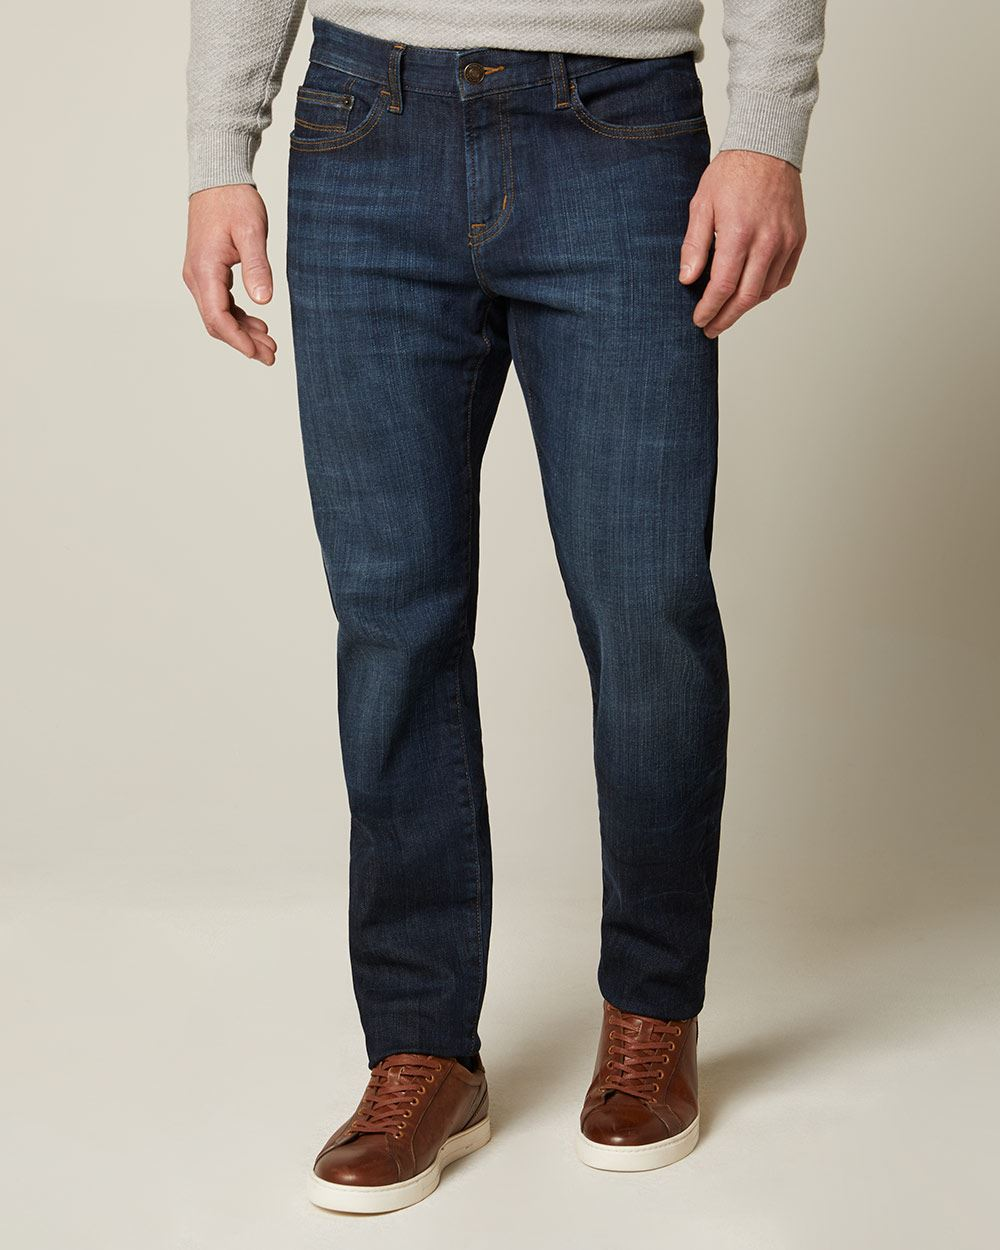 Athletic fit premium dark wash Jeans